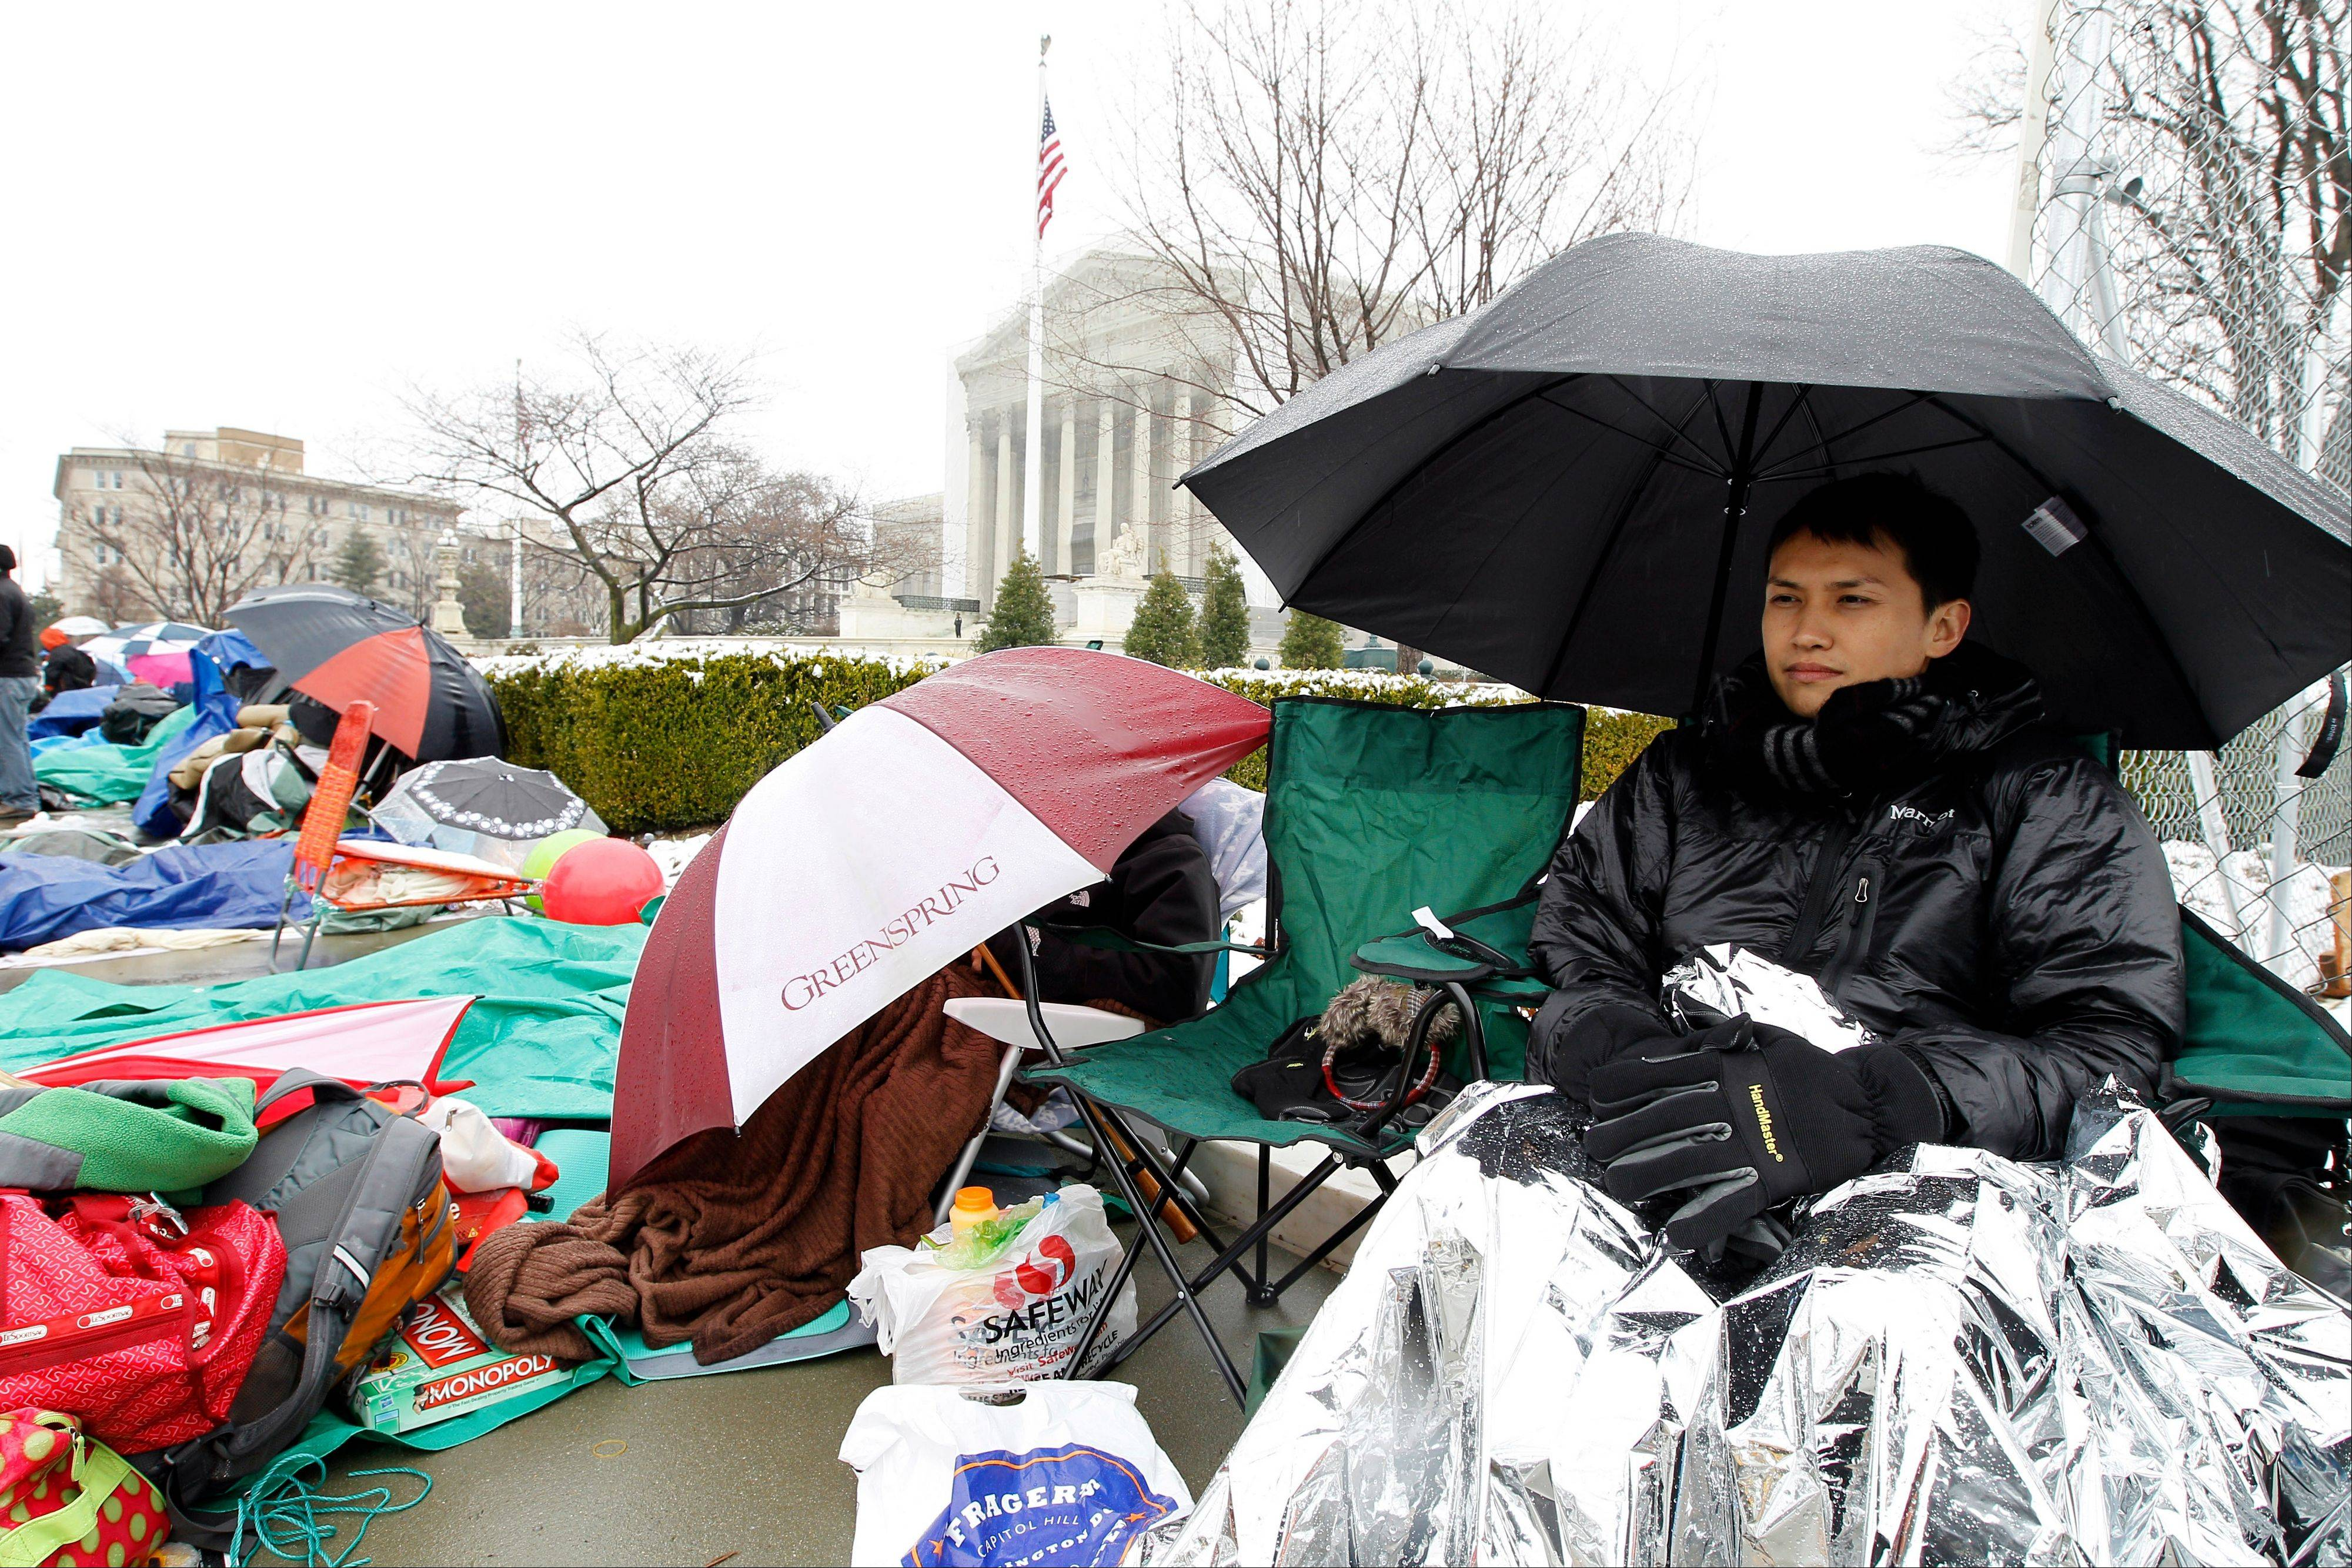 Wally Suphap from California waits in line to enter Supreme Court in Washington Monday, a day before the court will hear a same-sex marriage case.